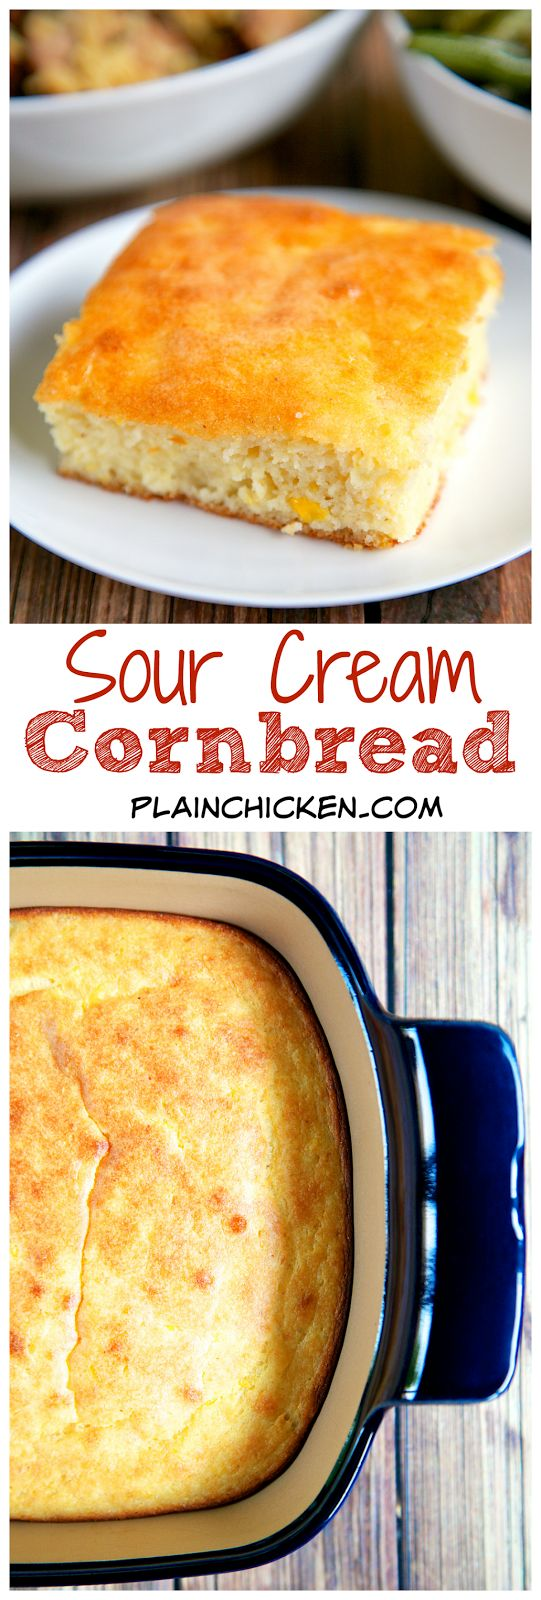 Sour cream cornbread, Cornbread recipes and Cornbread on Pinterest